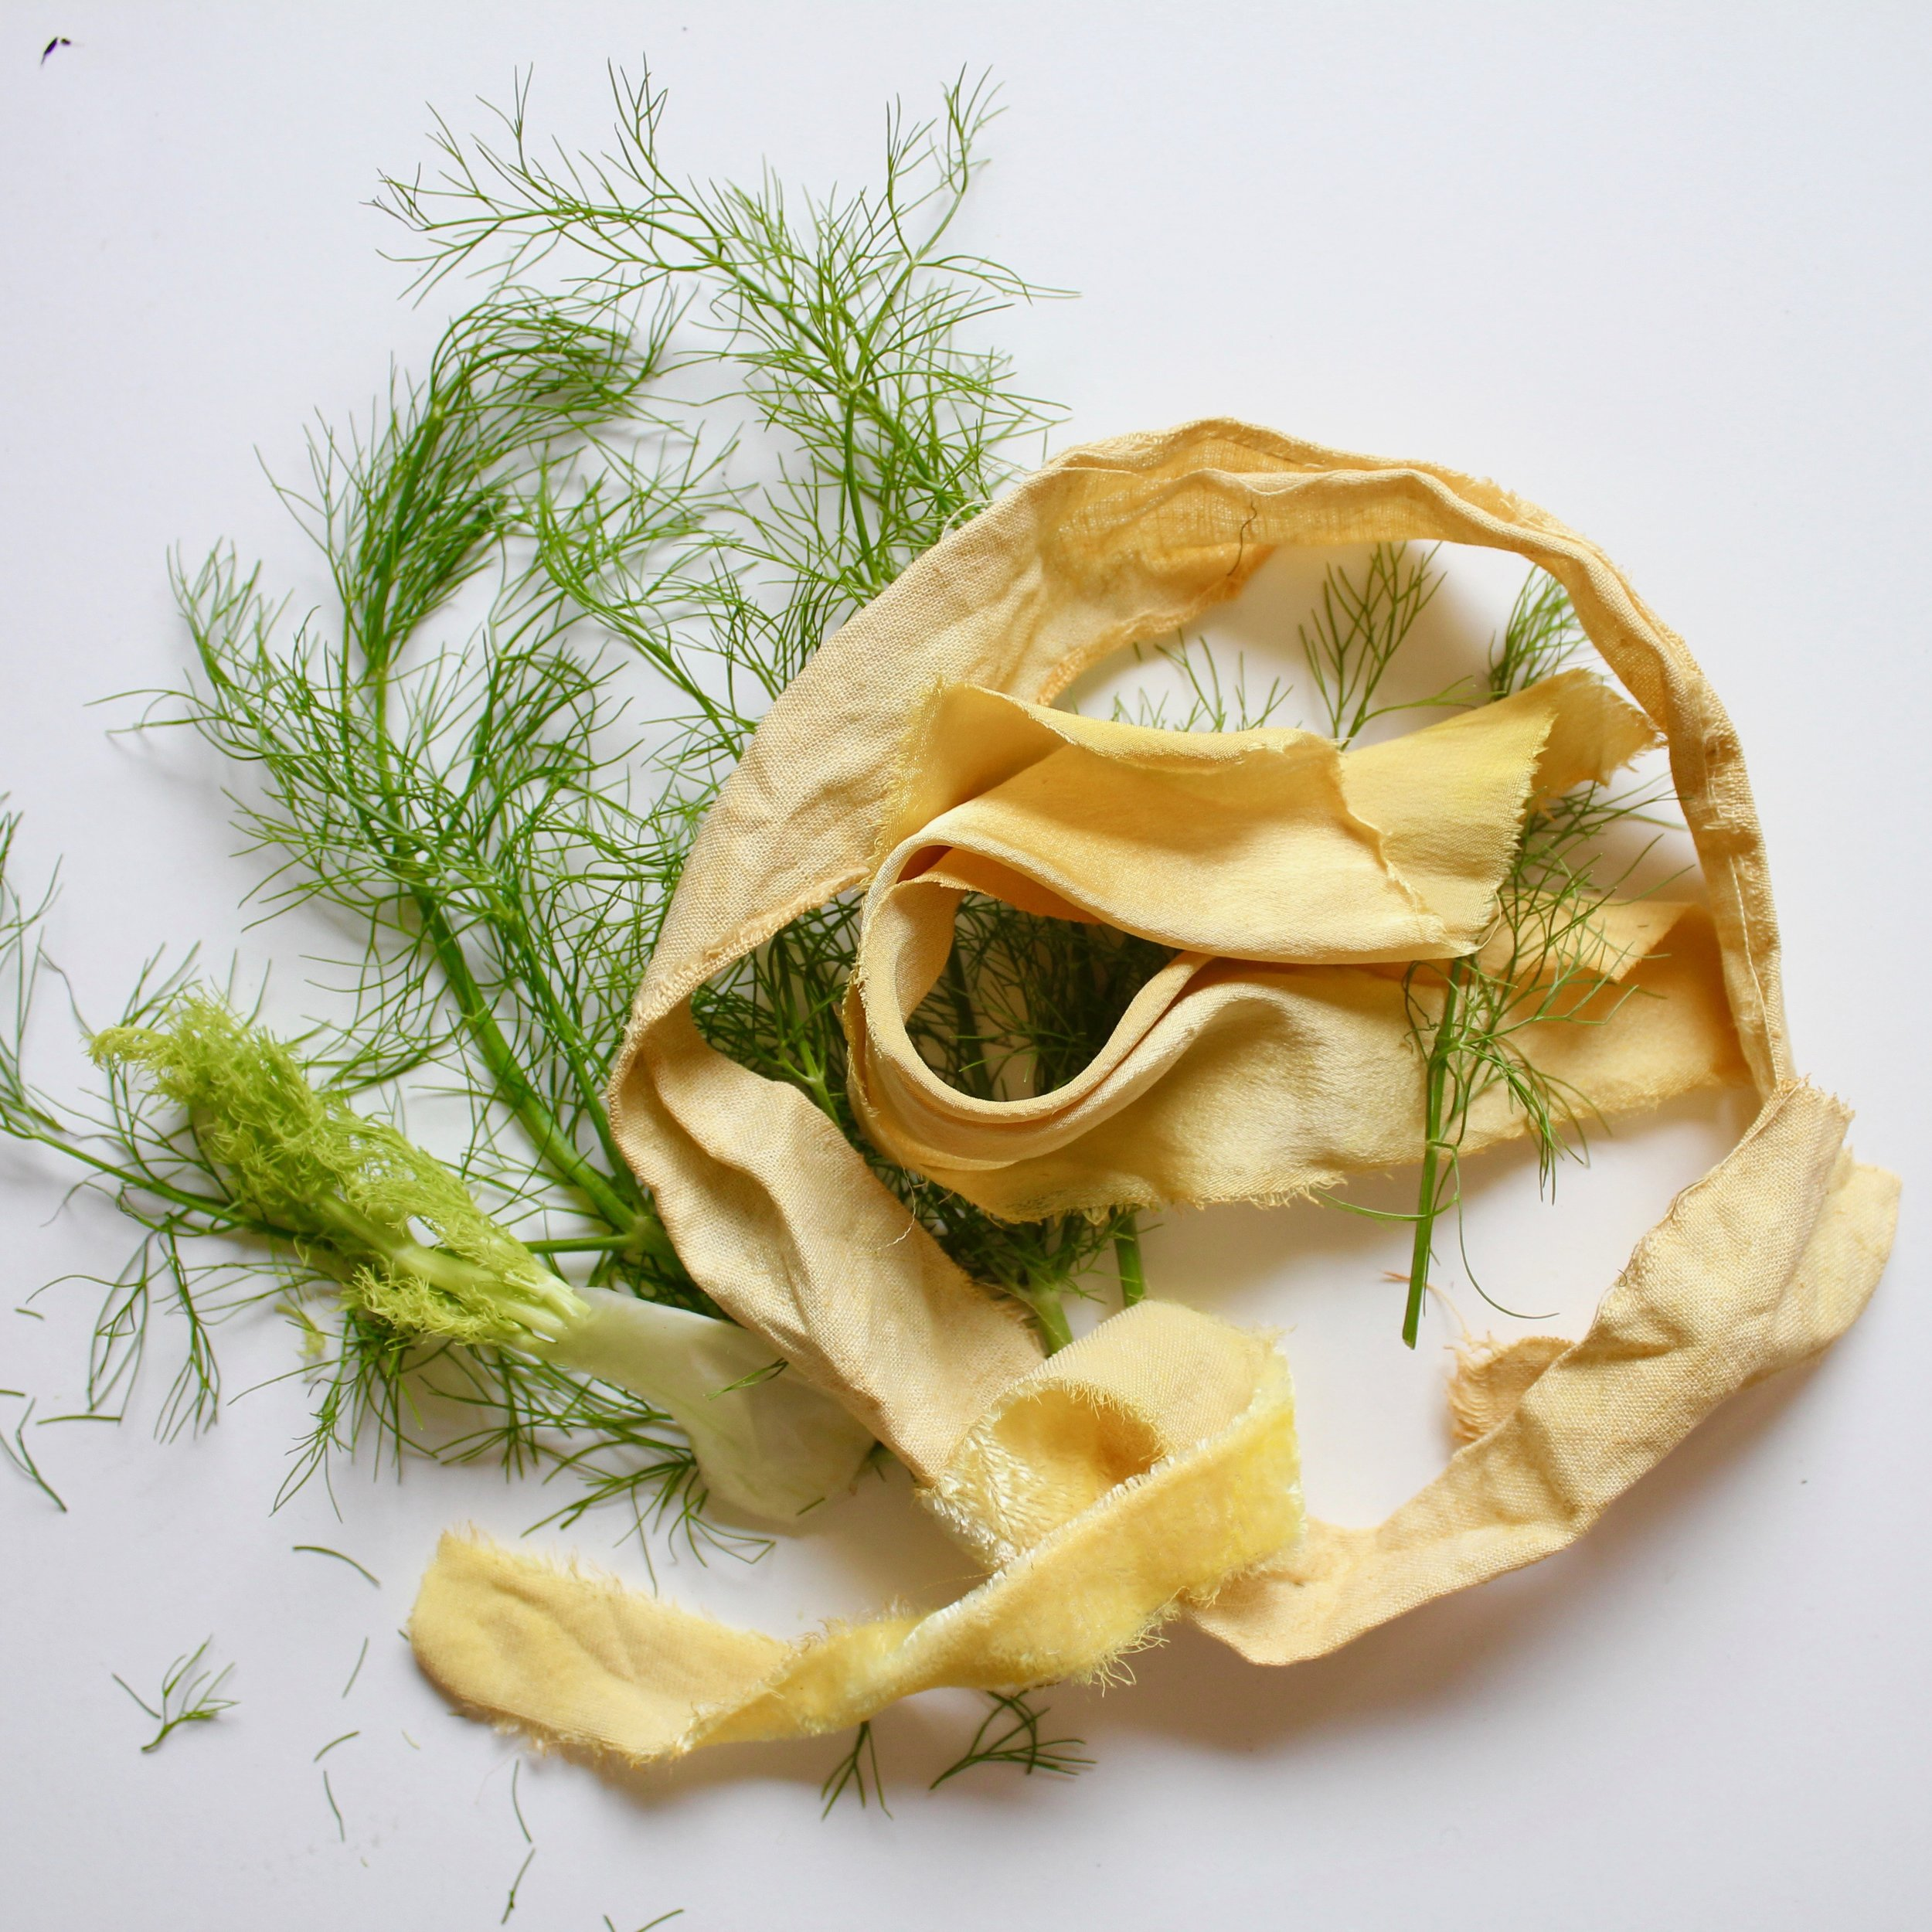 Fennel  Fennel tops can make sunny yellows